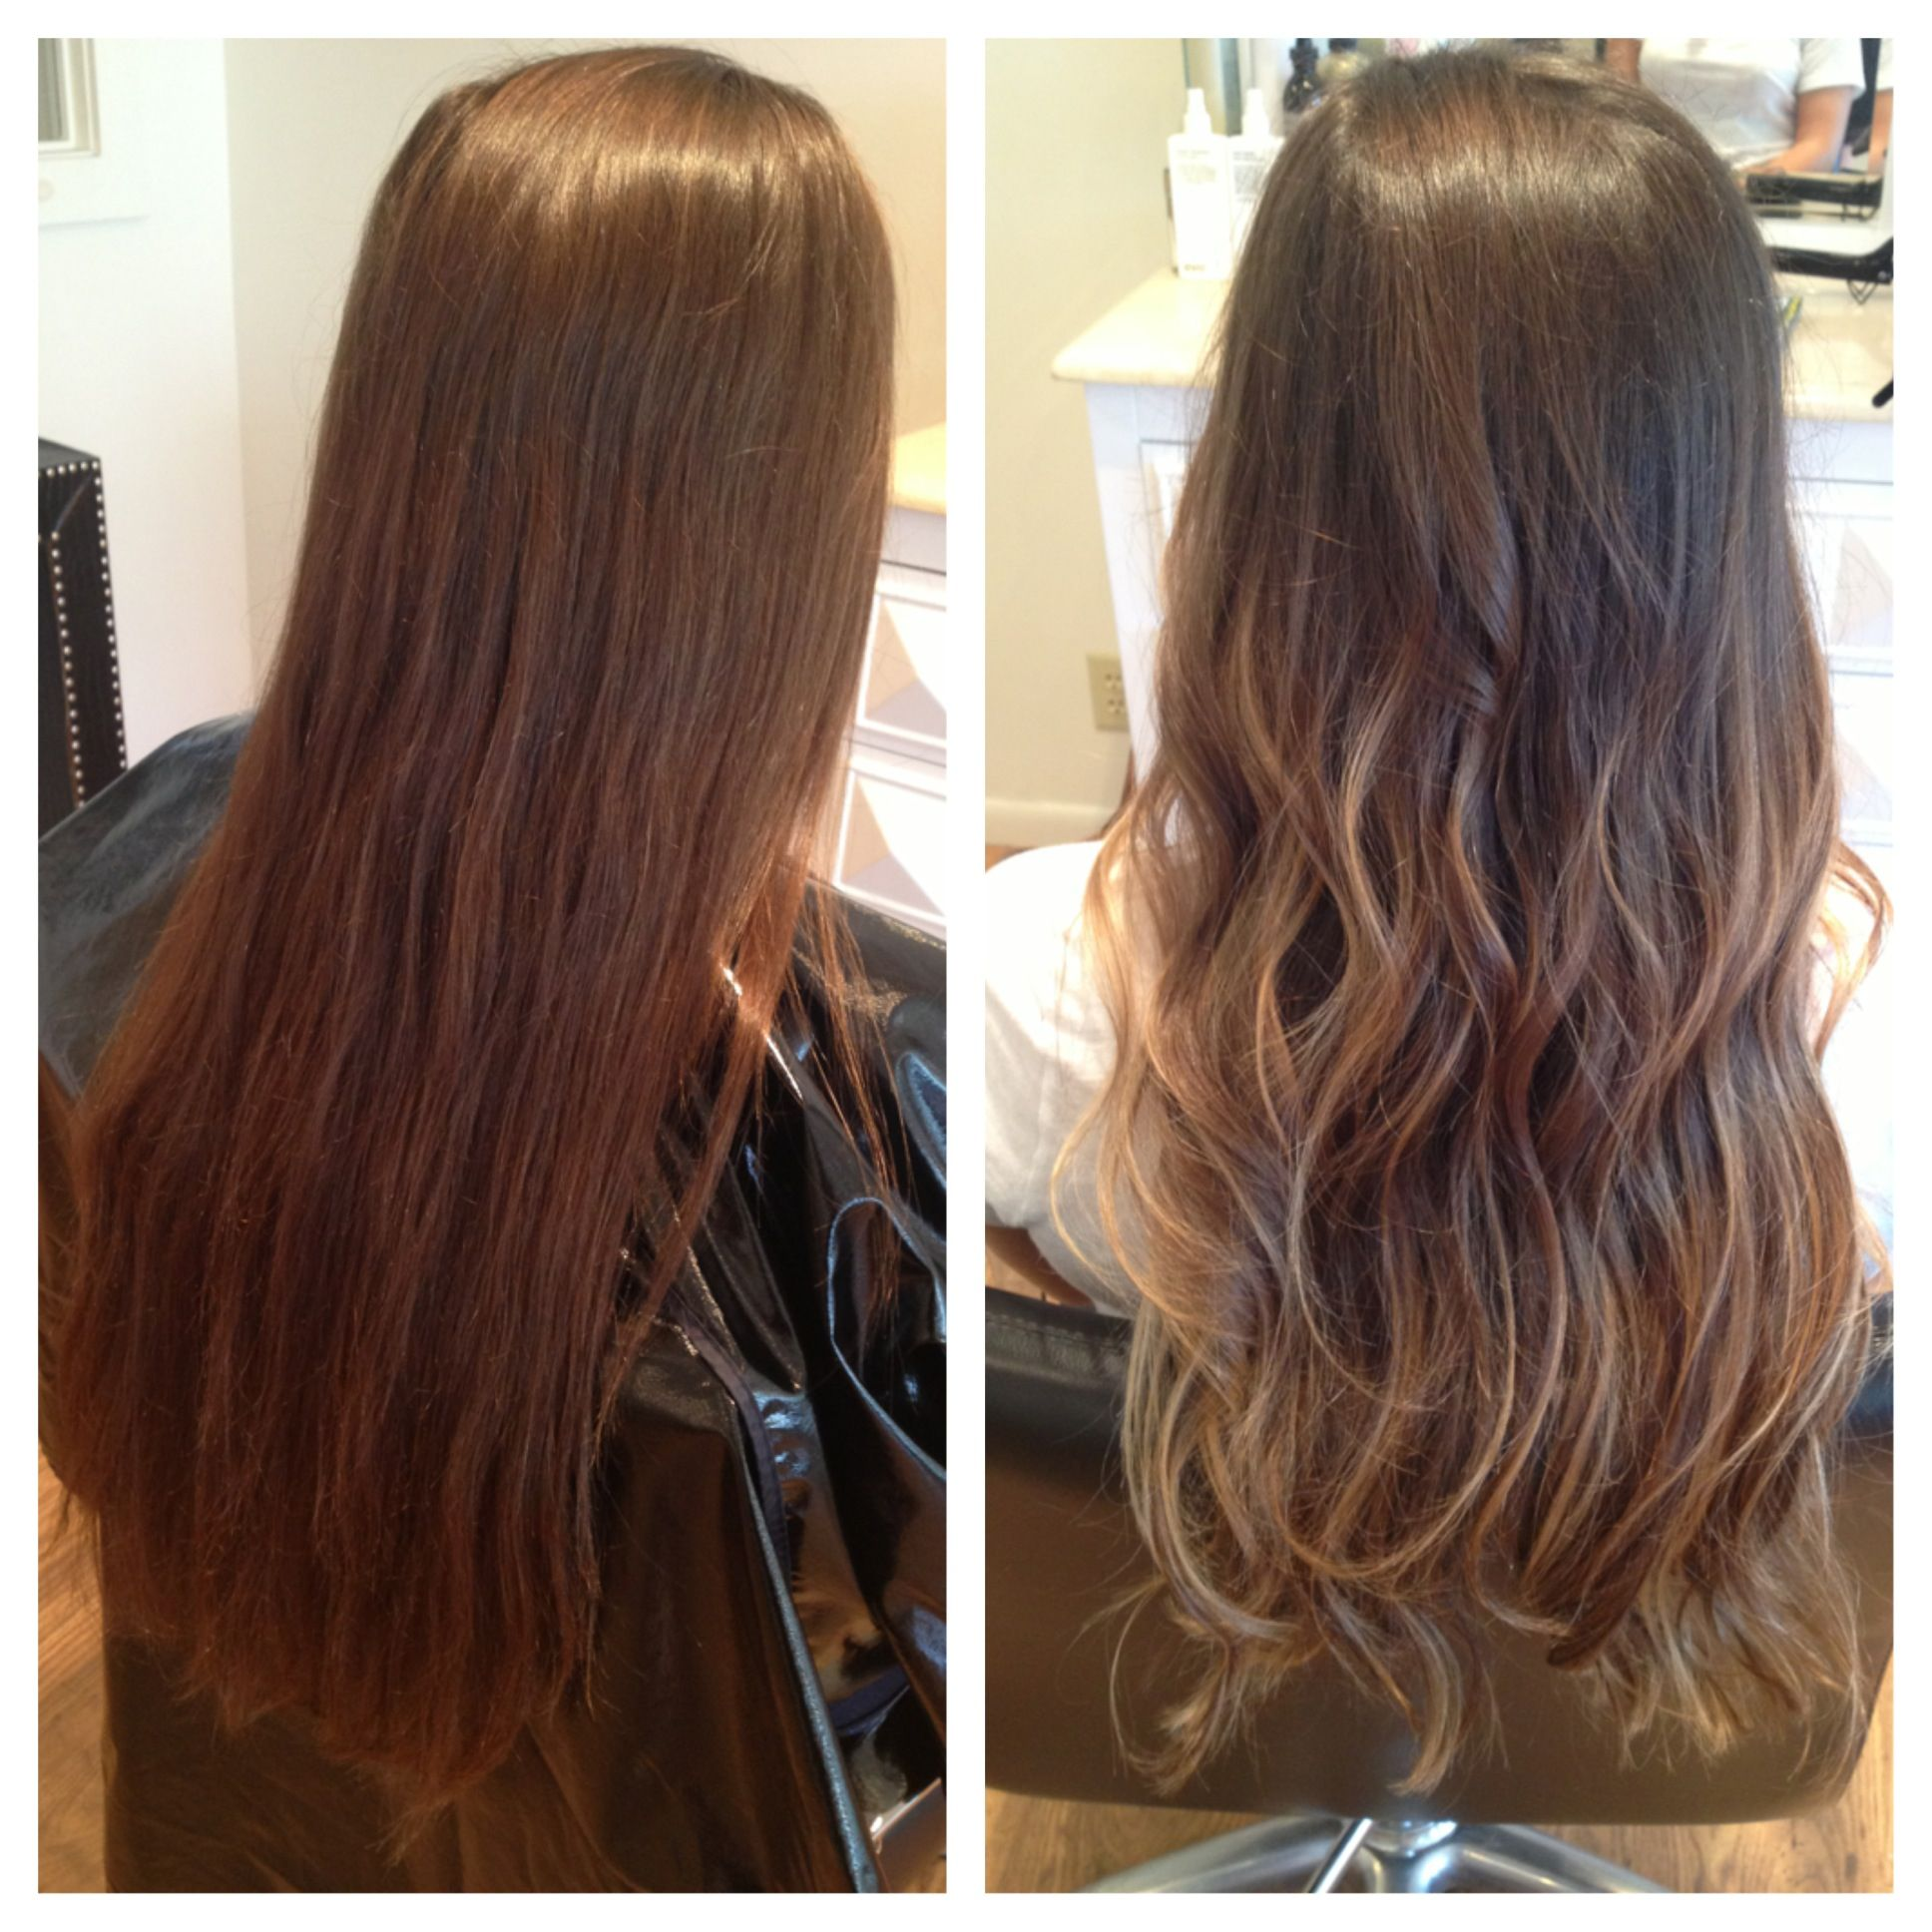 Before and after hair color balayage highlights ombr hair color before and after hair color balayage highlights ombr hair color natural color pmusecretfo Choice Image